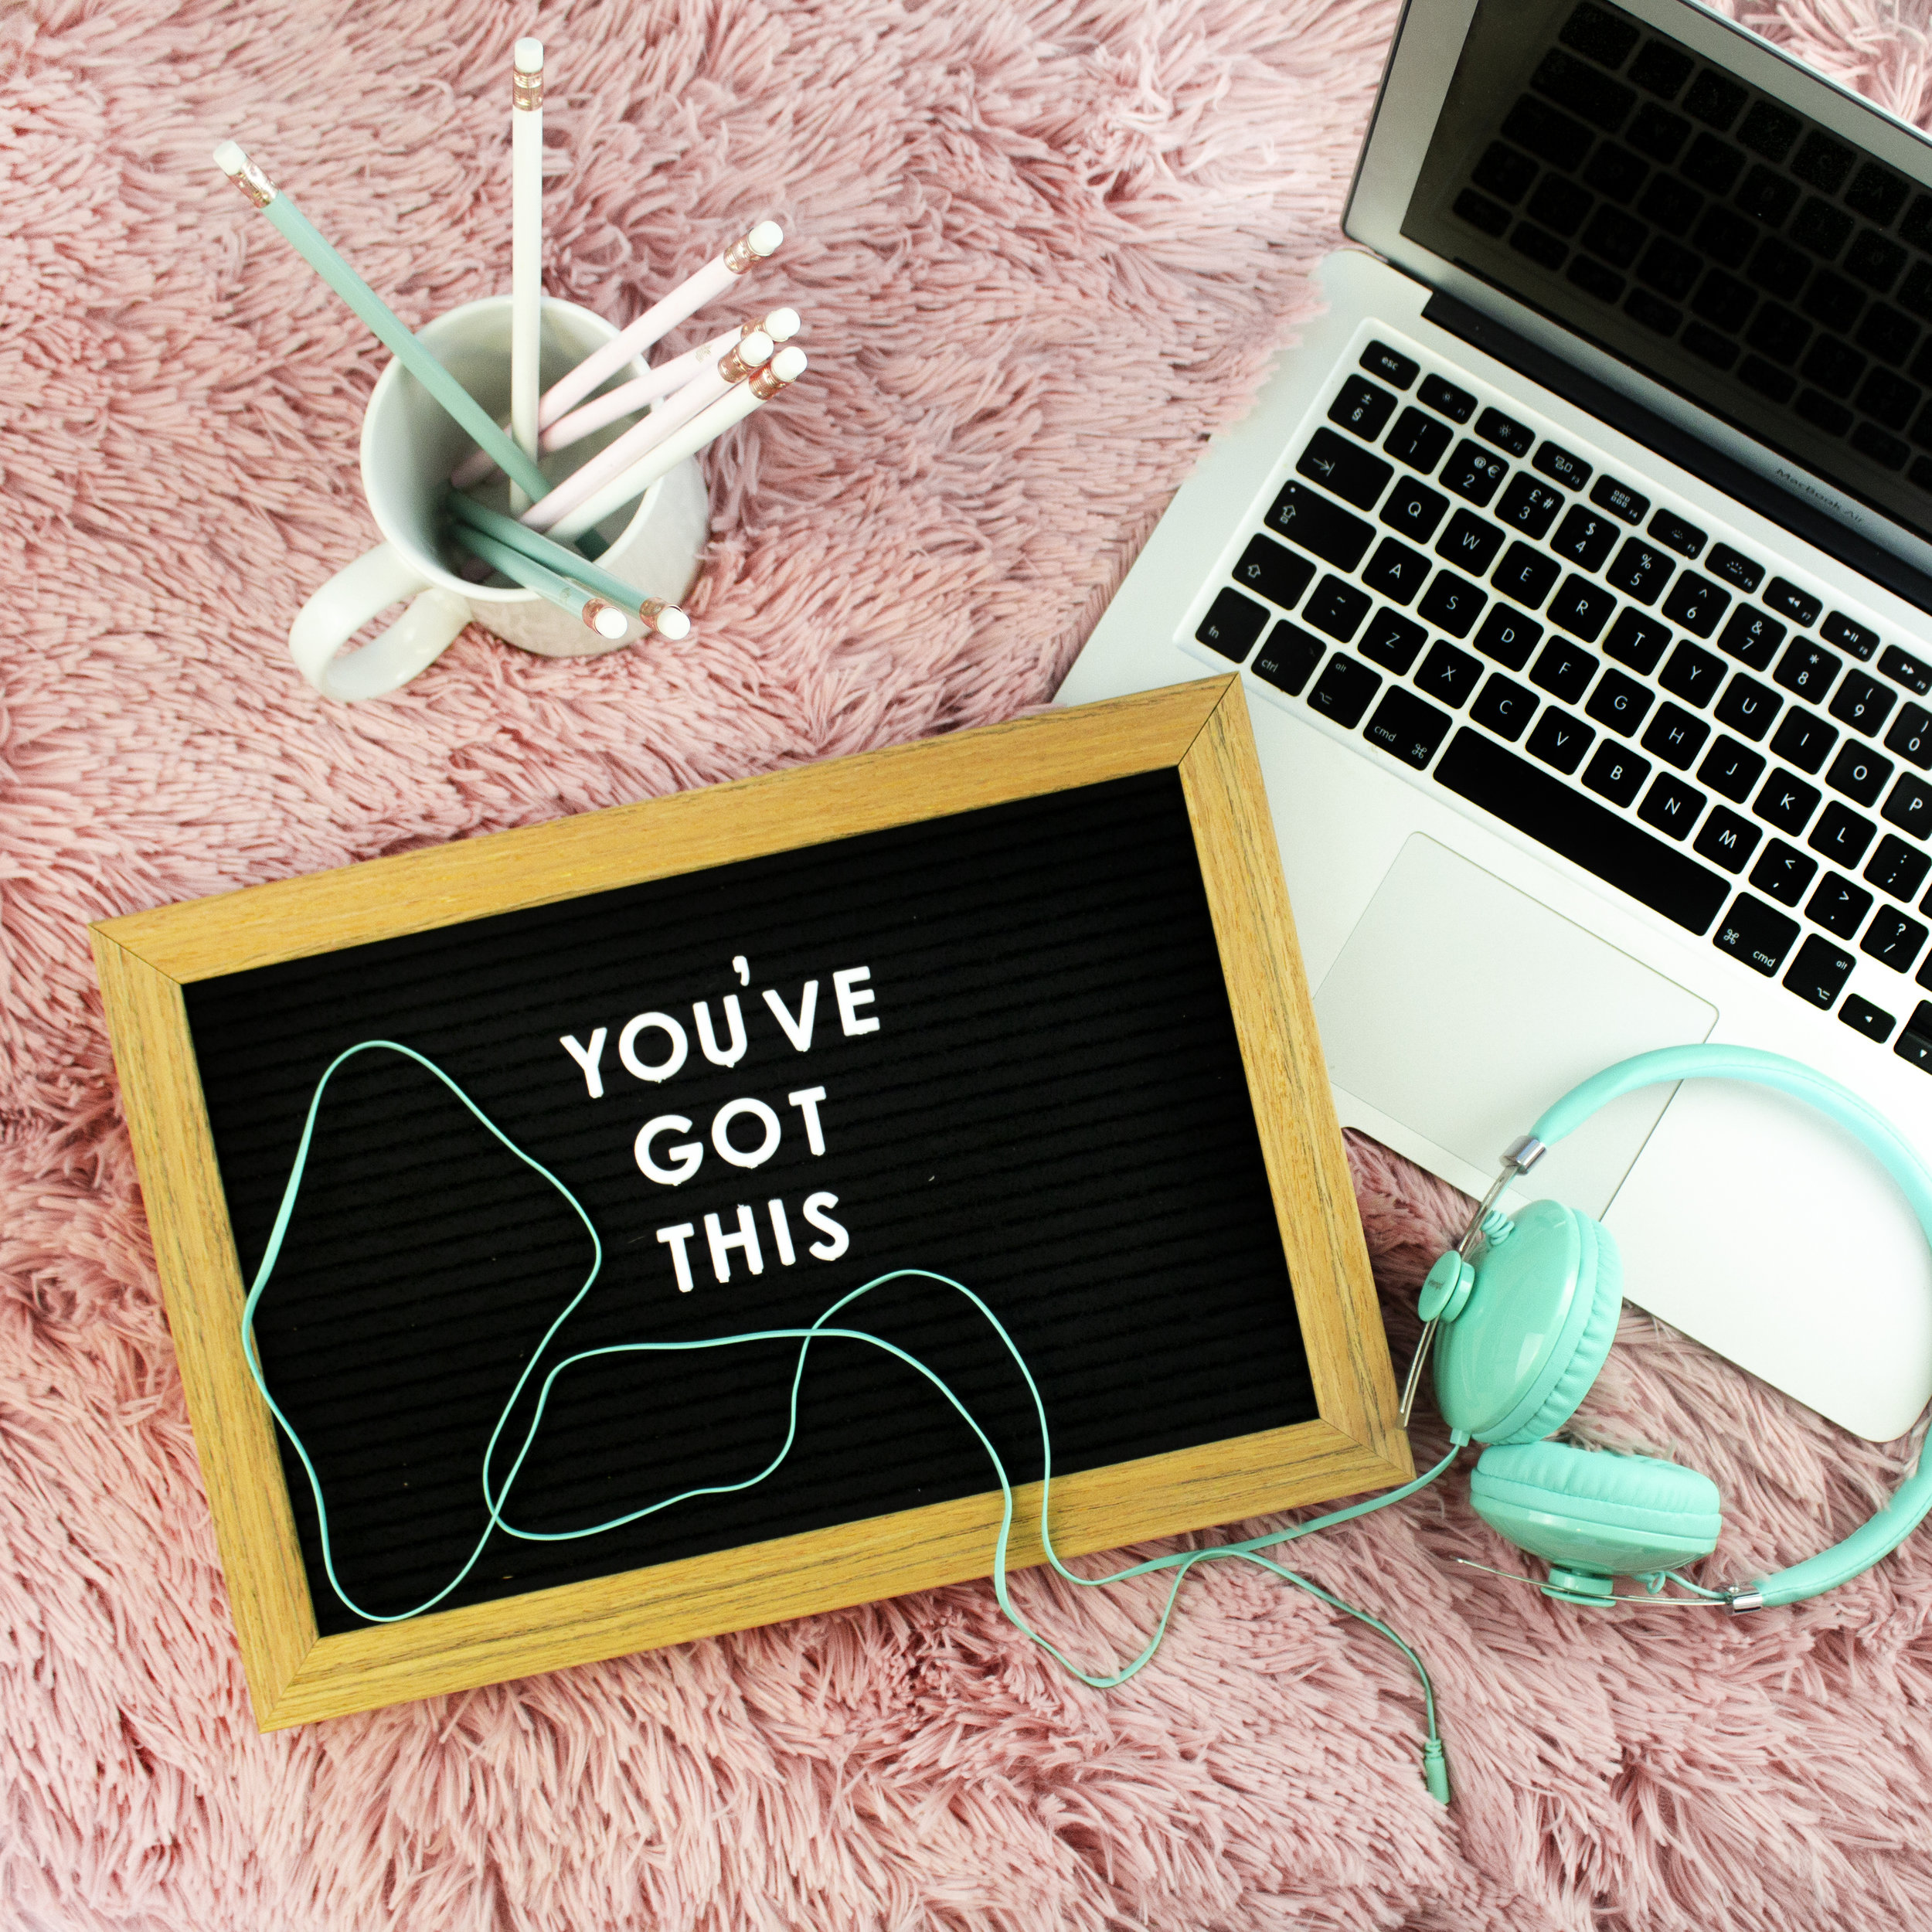 ready to make money from your blog? - Welcome to Blog Club, our 6 week online content creation course